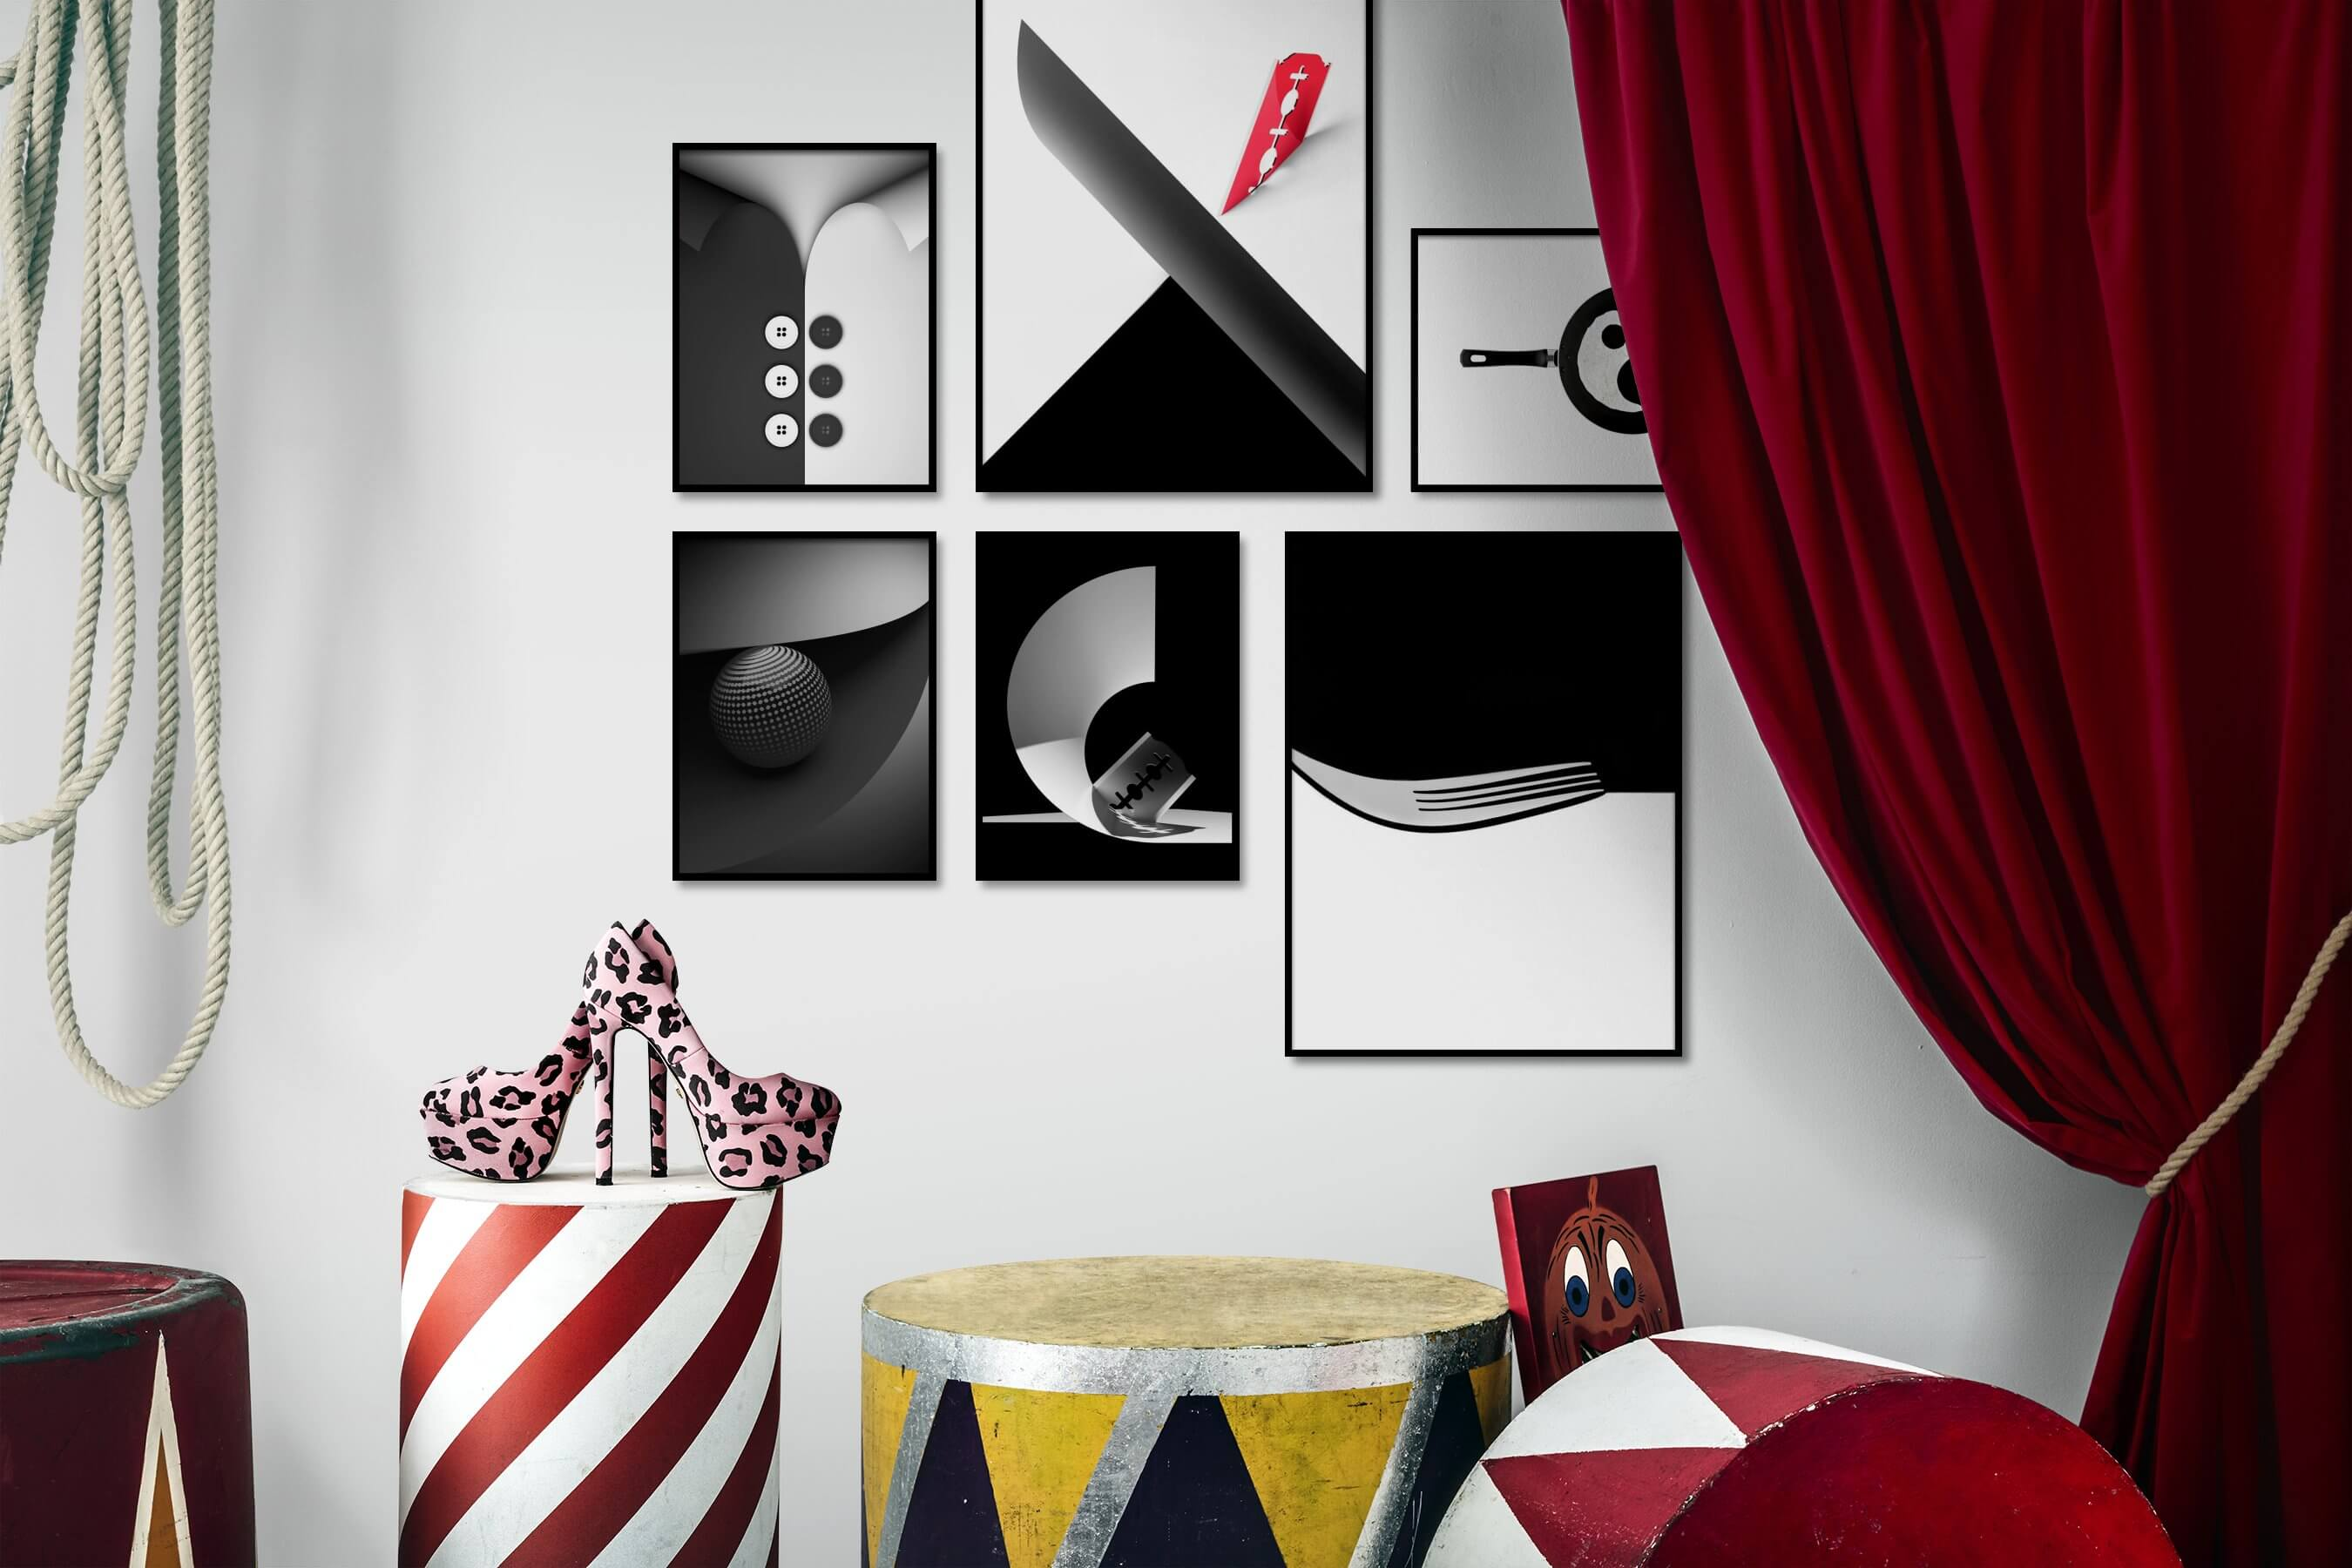 Gallery wall idea with six framed pictures arranged on a wall depicting Black & White, For the Moderate, For the Minimalist, Dark Tones, Bright Tones, and Mindfulness